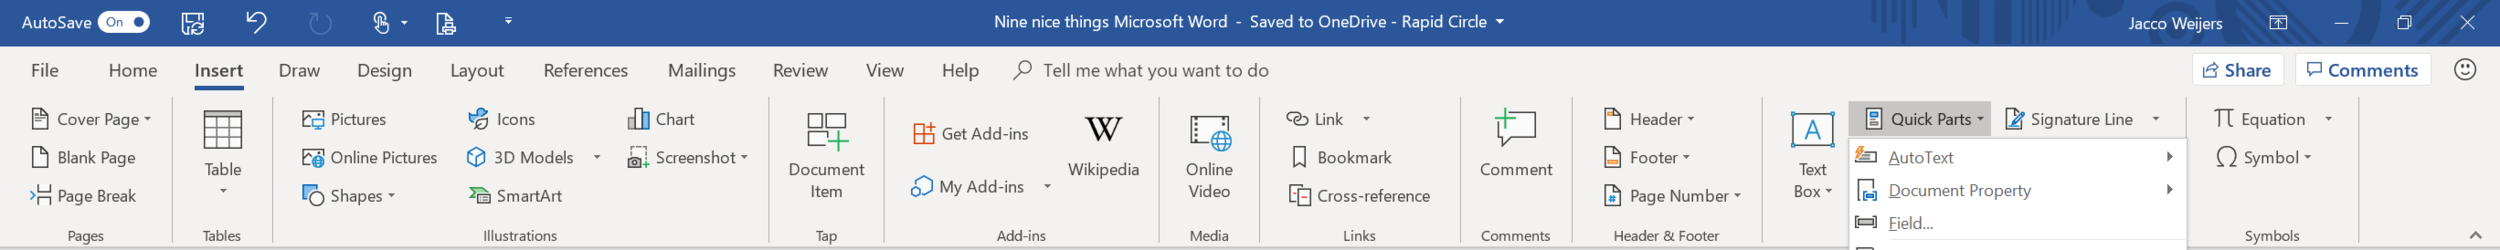 Microsoft Word Quickparts.PNG